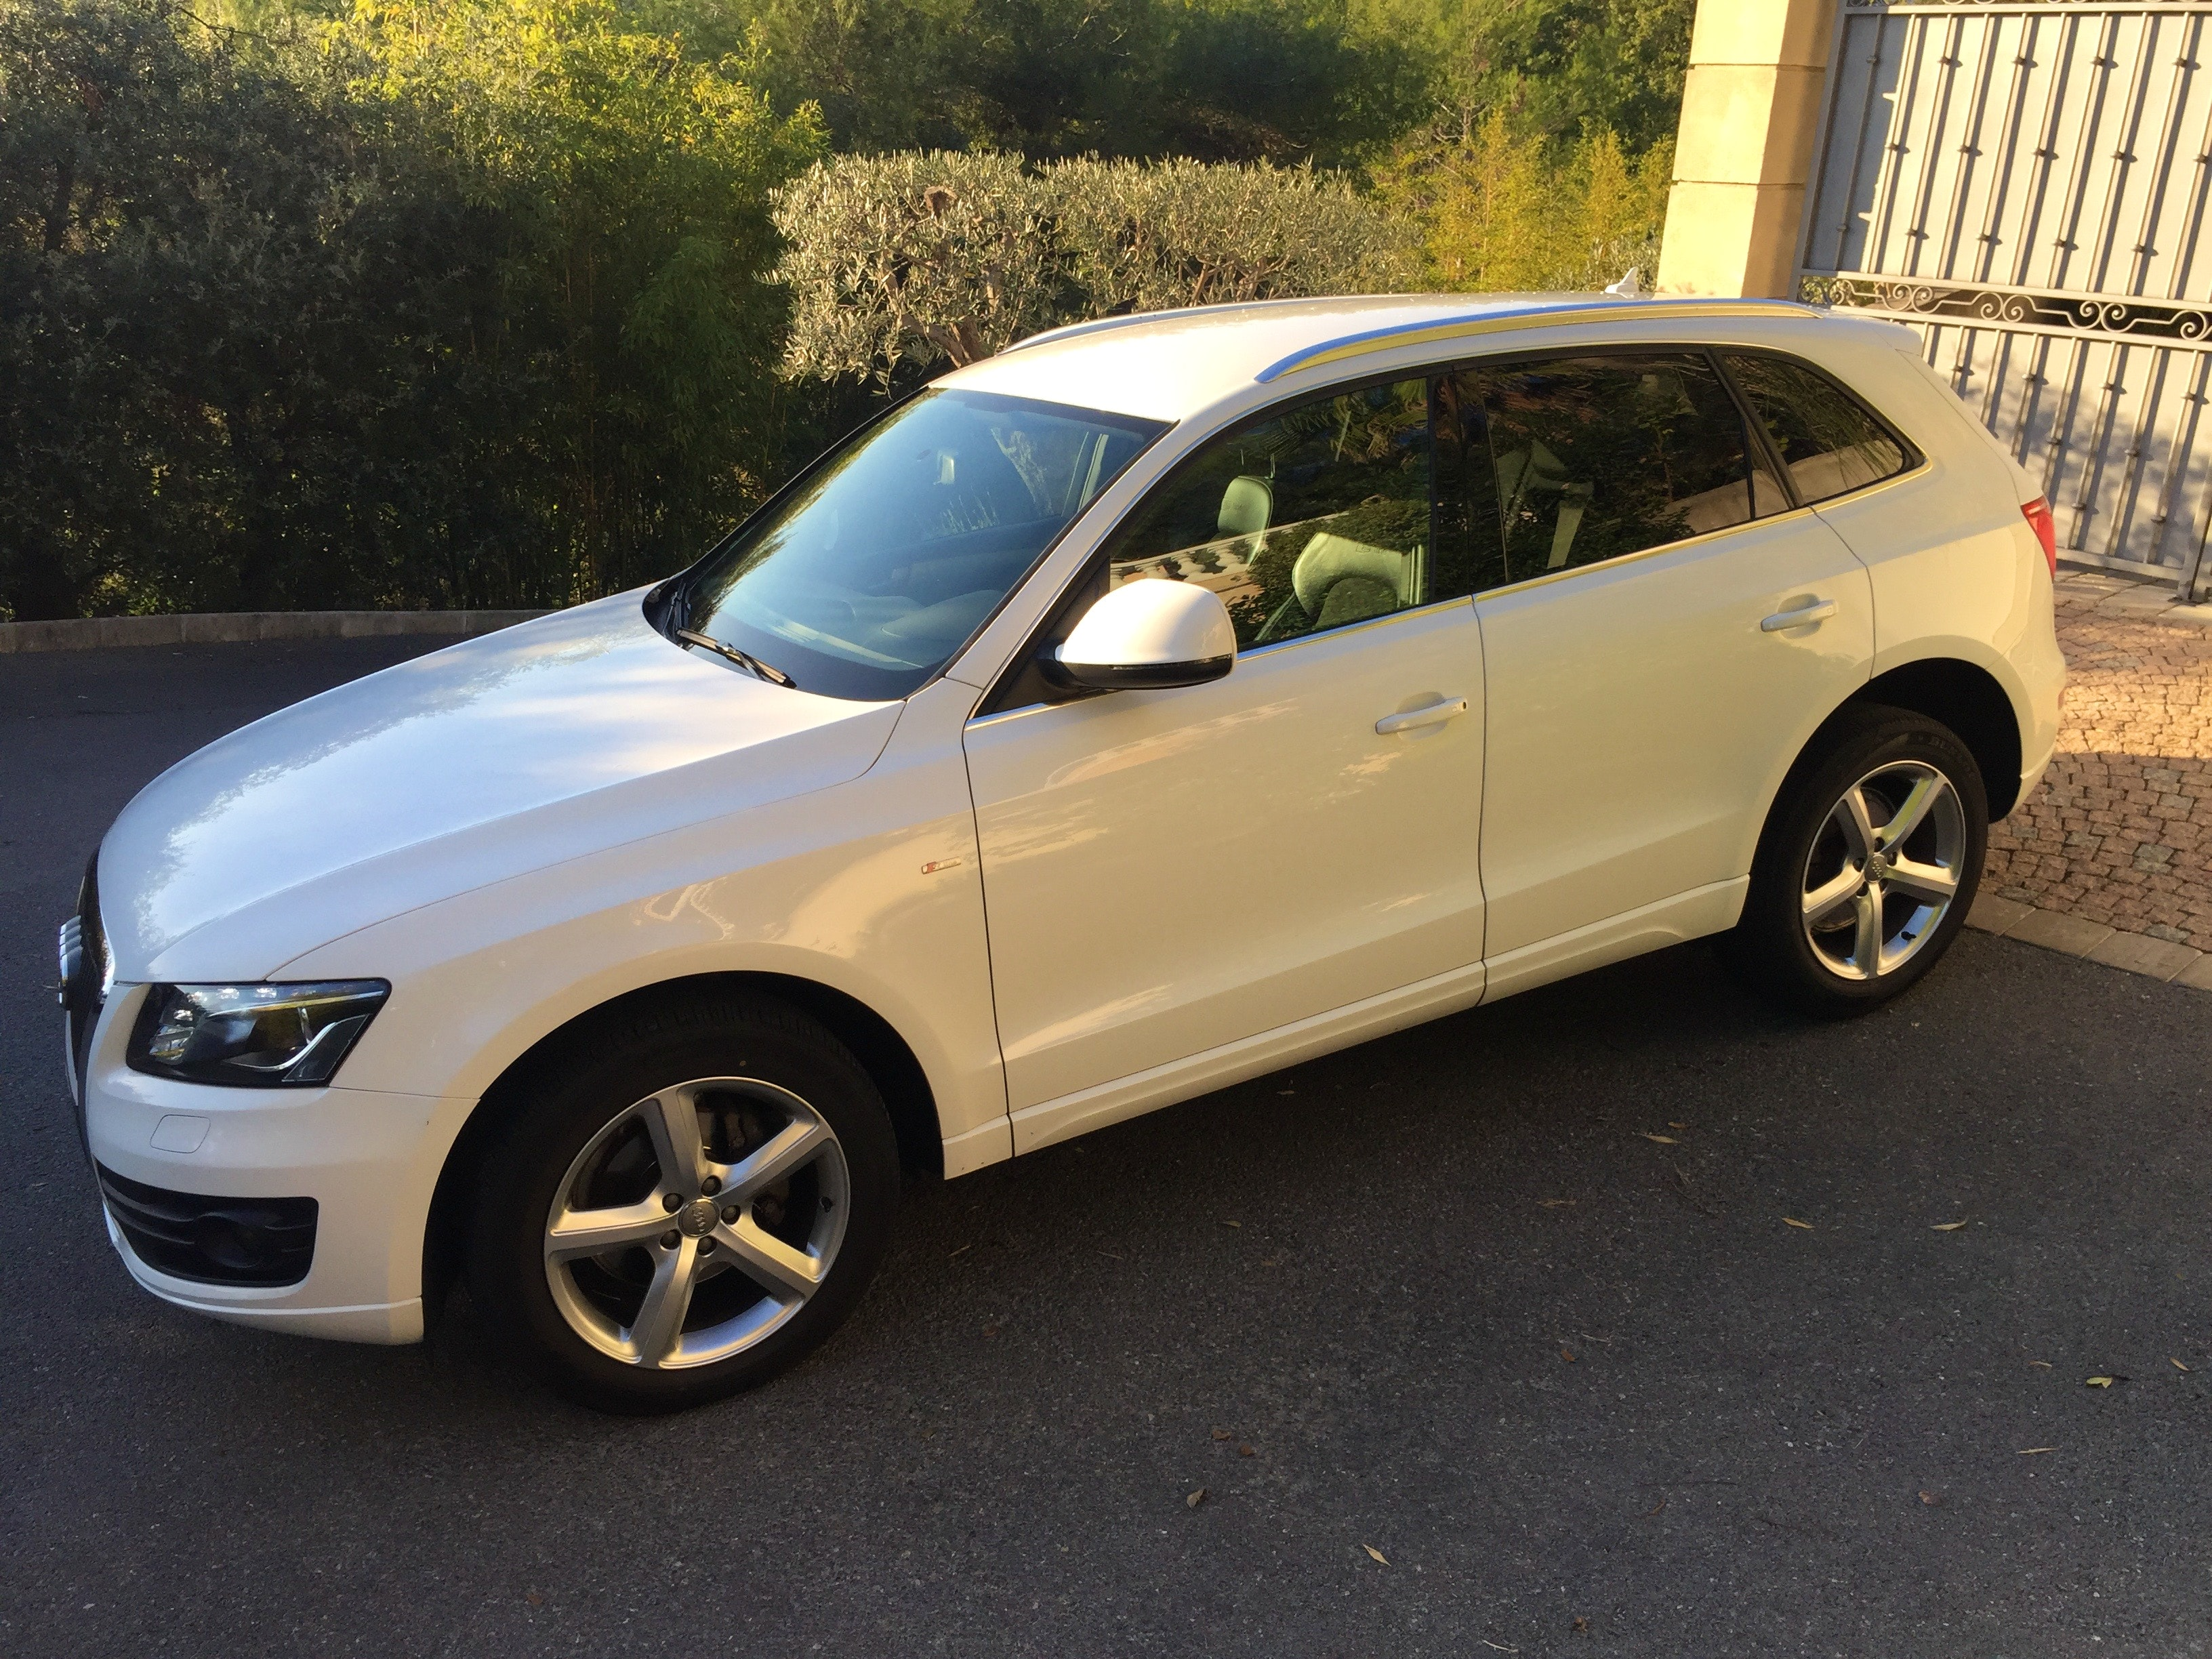 AUDI Q5 QUATRO FULL OPTION S LINE, 2011, Diesel, automatique - SUV Cannes (06)